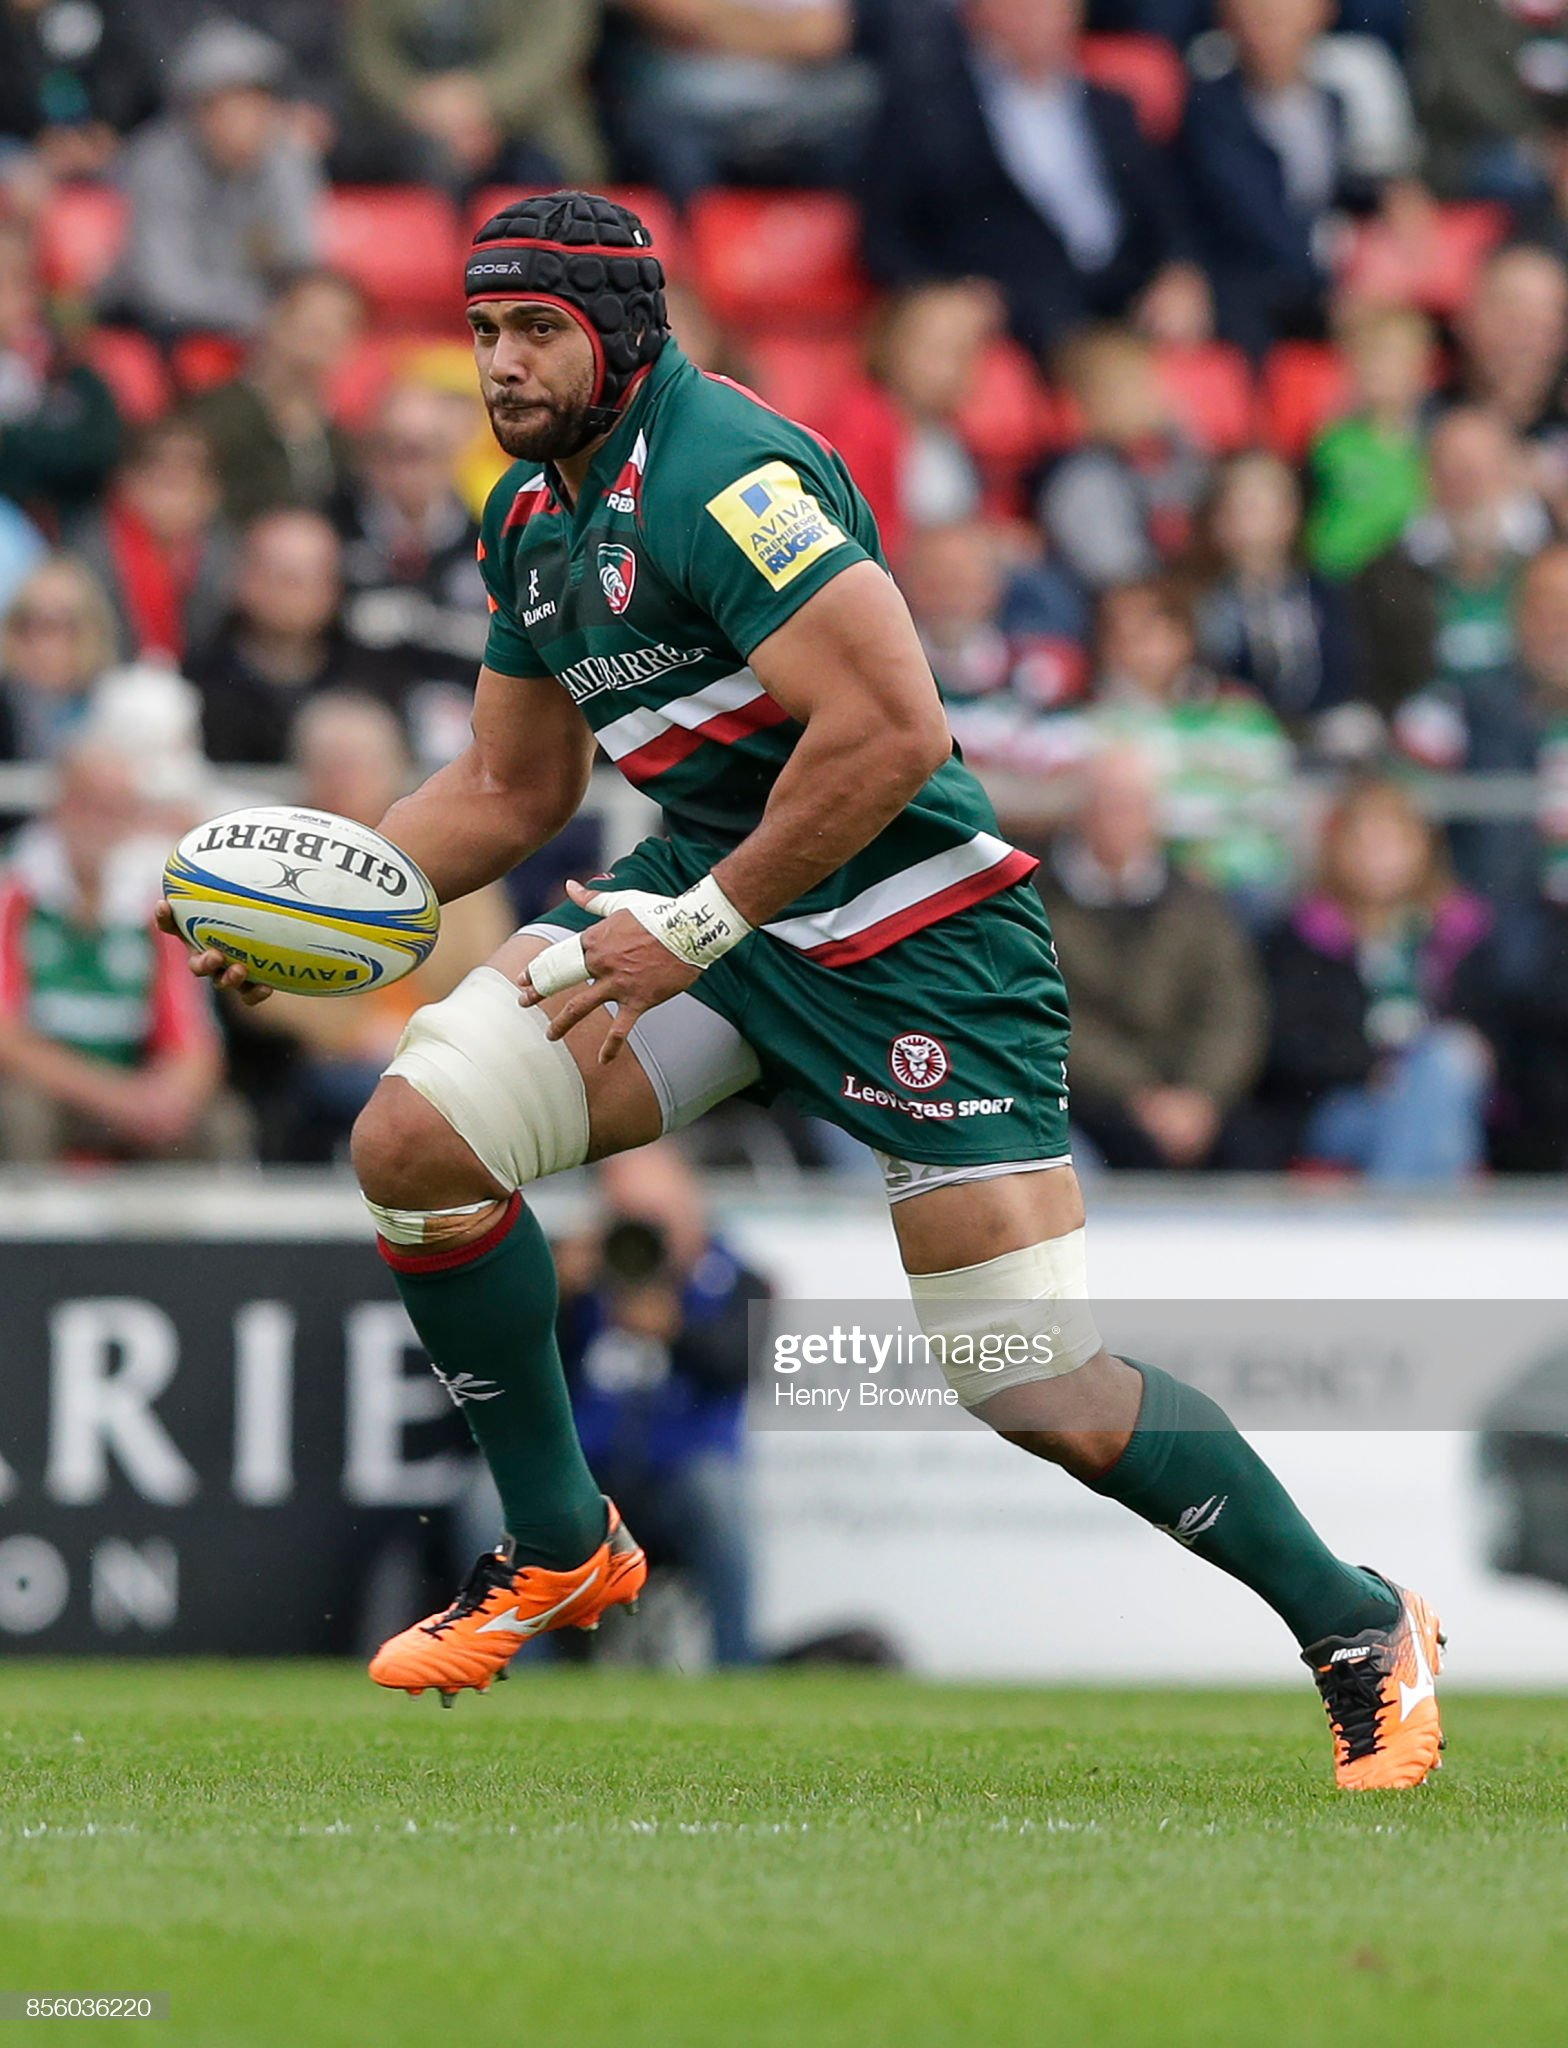 Tongan International Sione Kalamafoni Hopes To Follow In The Footsteps Of Wales Legend Scott Quinnell Ahead of European Quarter-final With Toulon